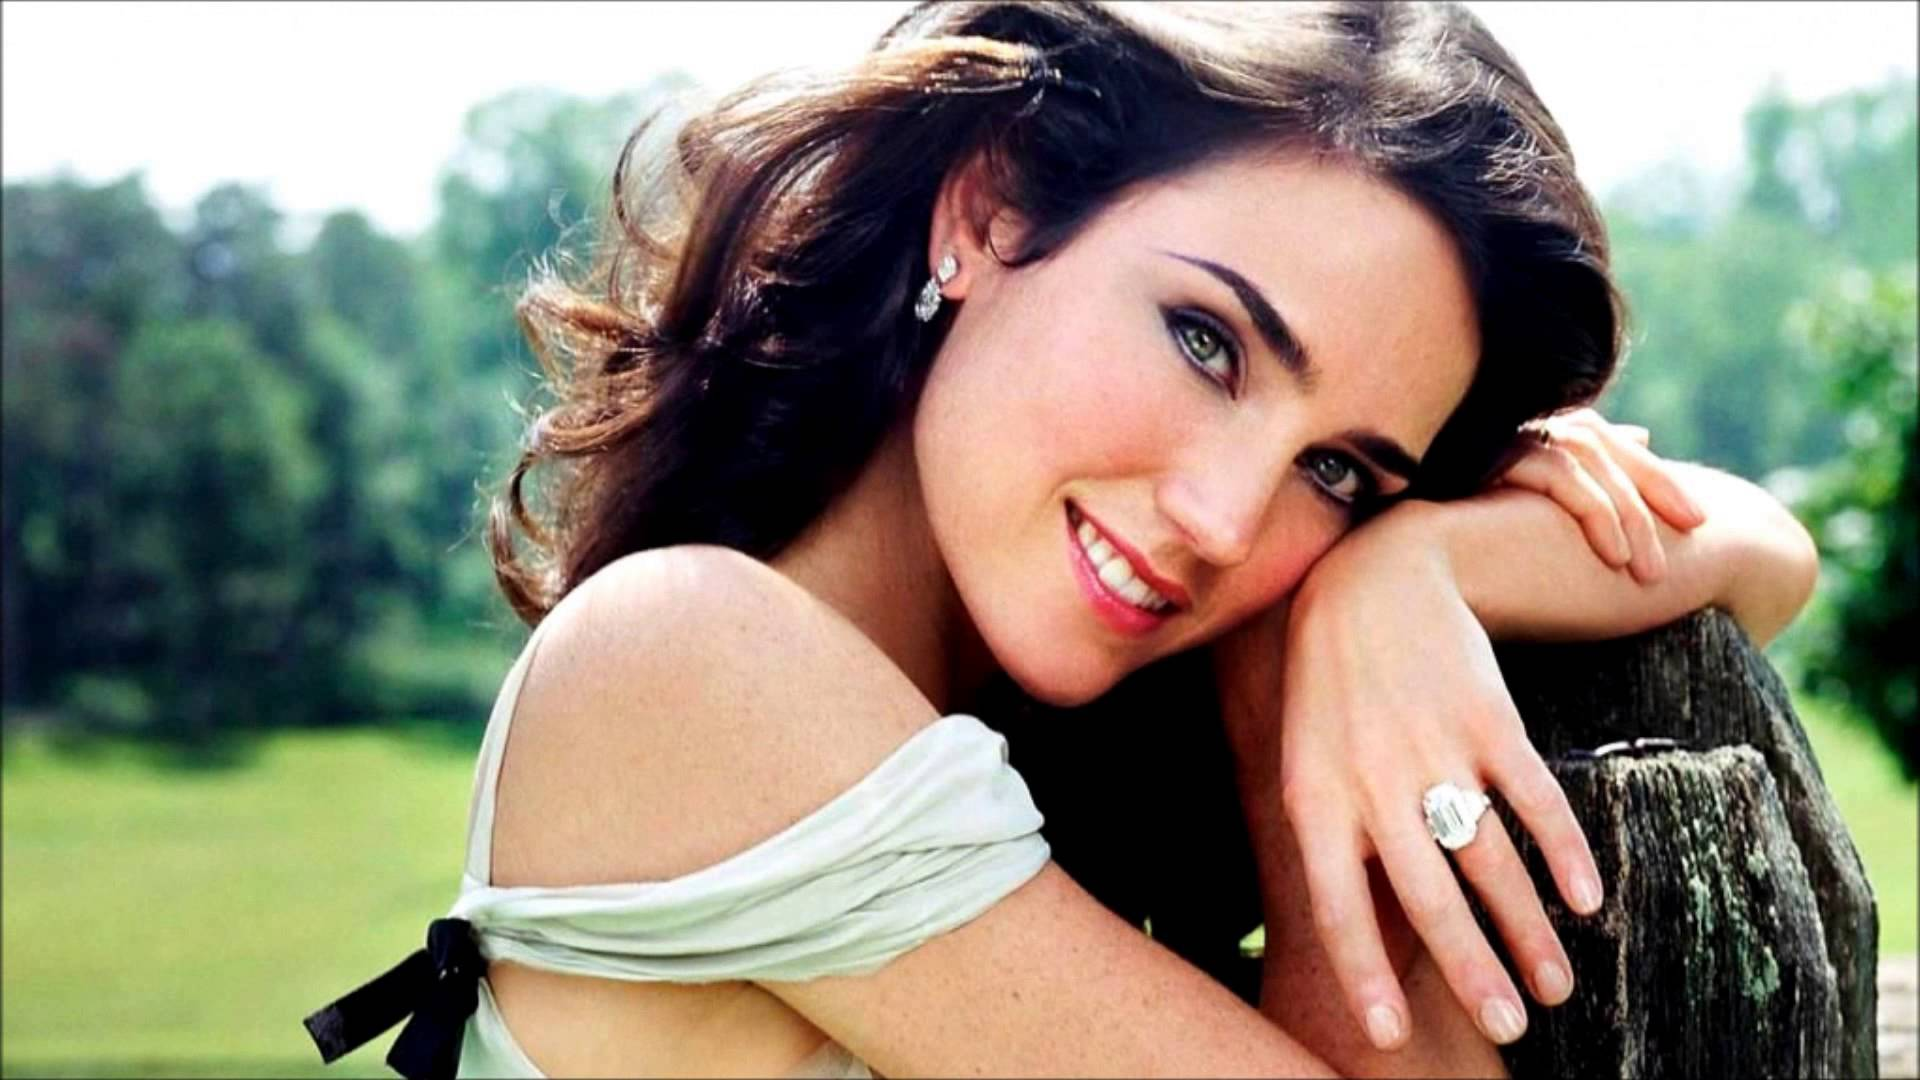 1920x1080 - Jennifer Connelly Wallpapers 22